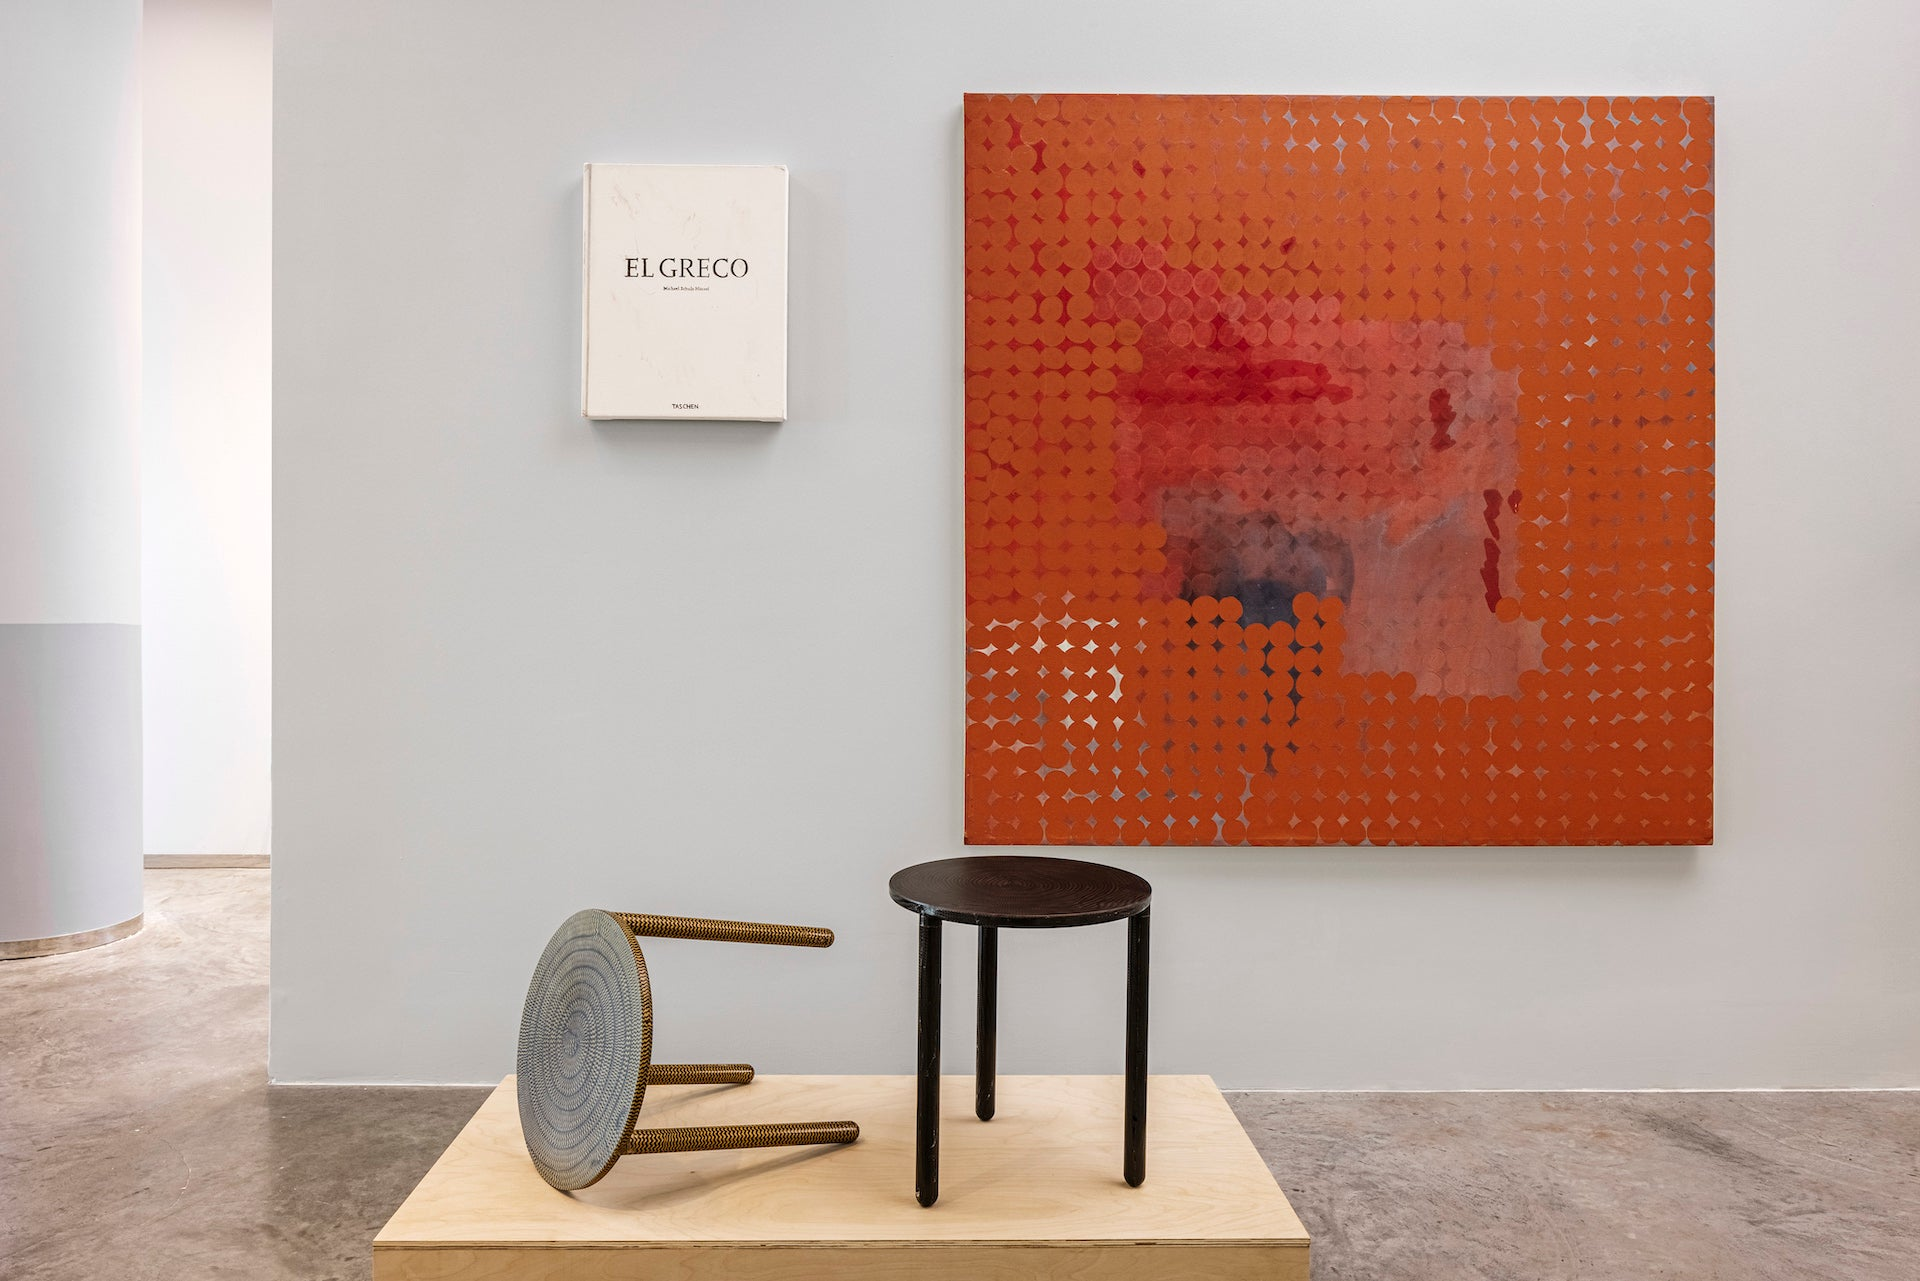 The Design Shop, featuring works by Brian Rideout, Lynne Golob Gelfman, and Jonathan Muecke. Photo © Kris Tamburello